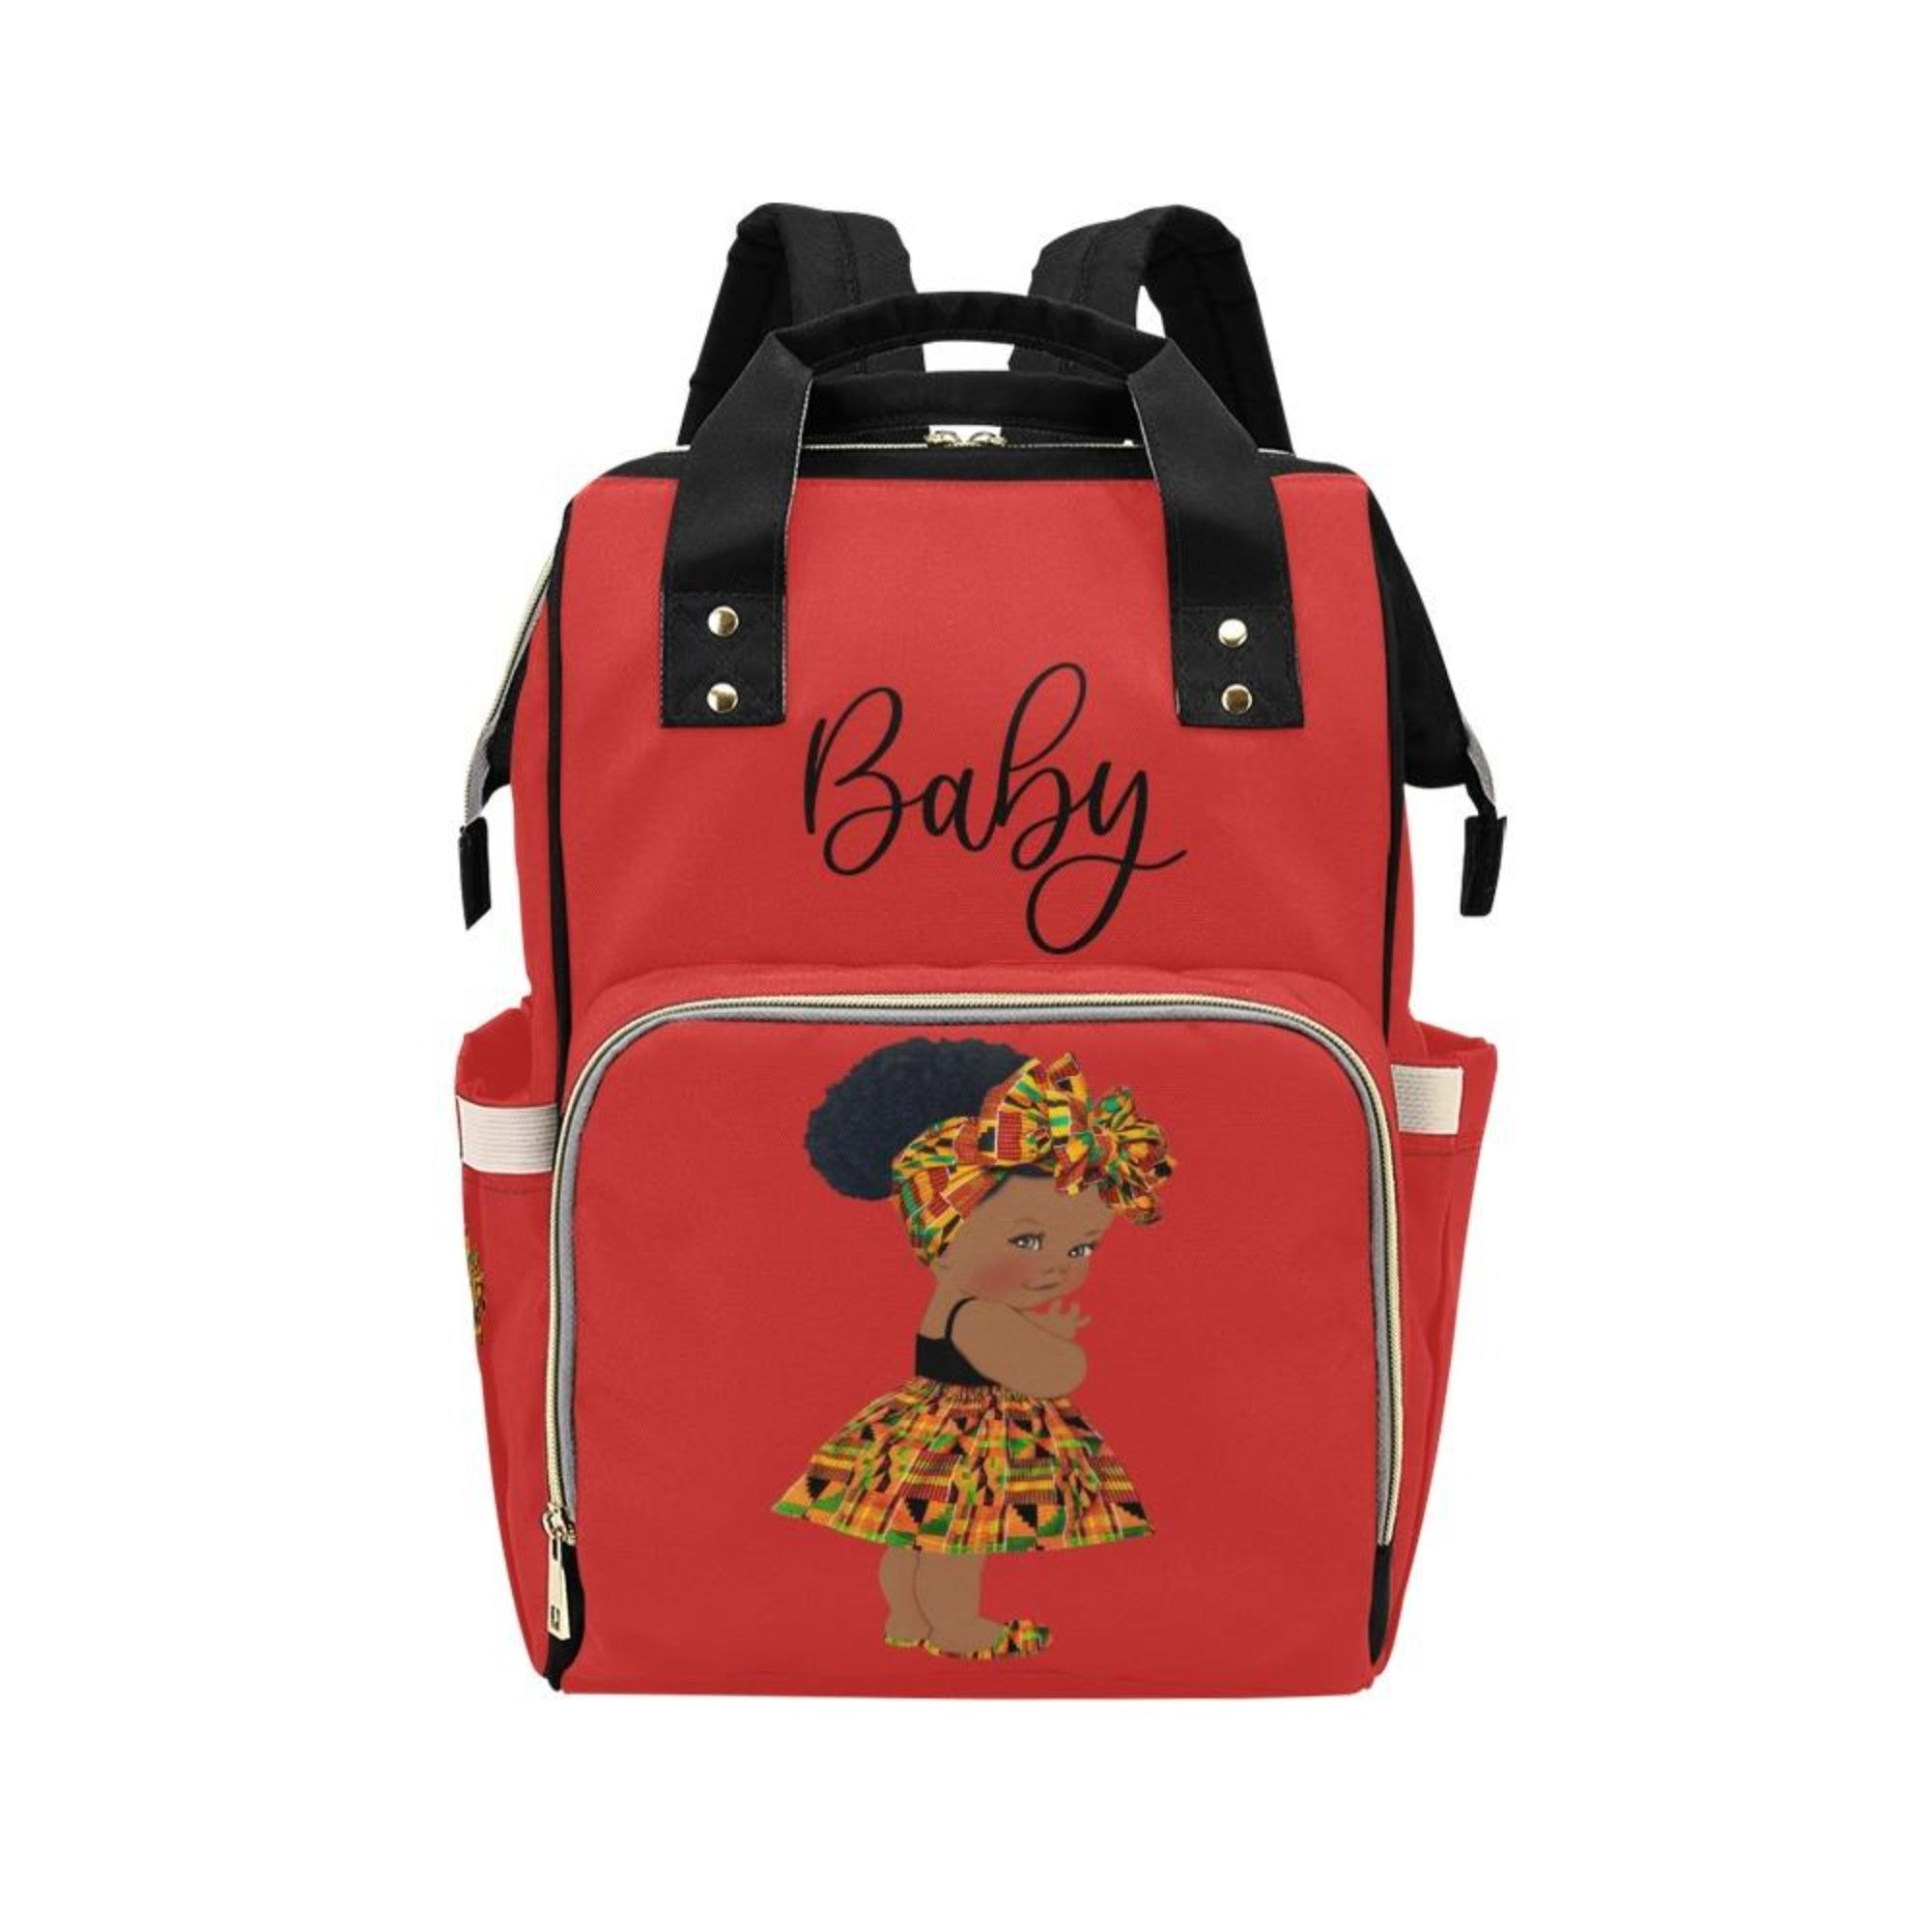 Designer Diaper Bag - Ethnic African American Baby Girl - Red Multi-Function Backpack